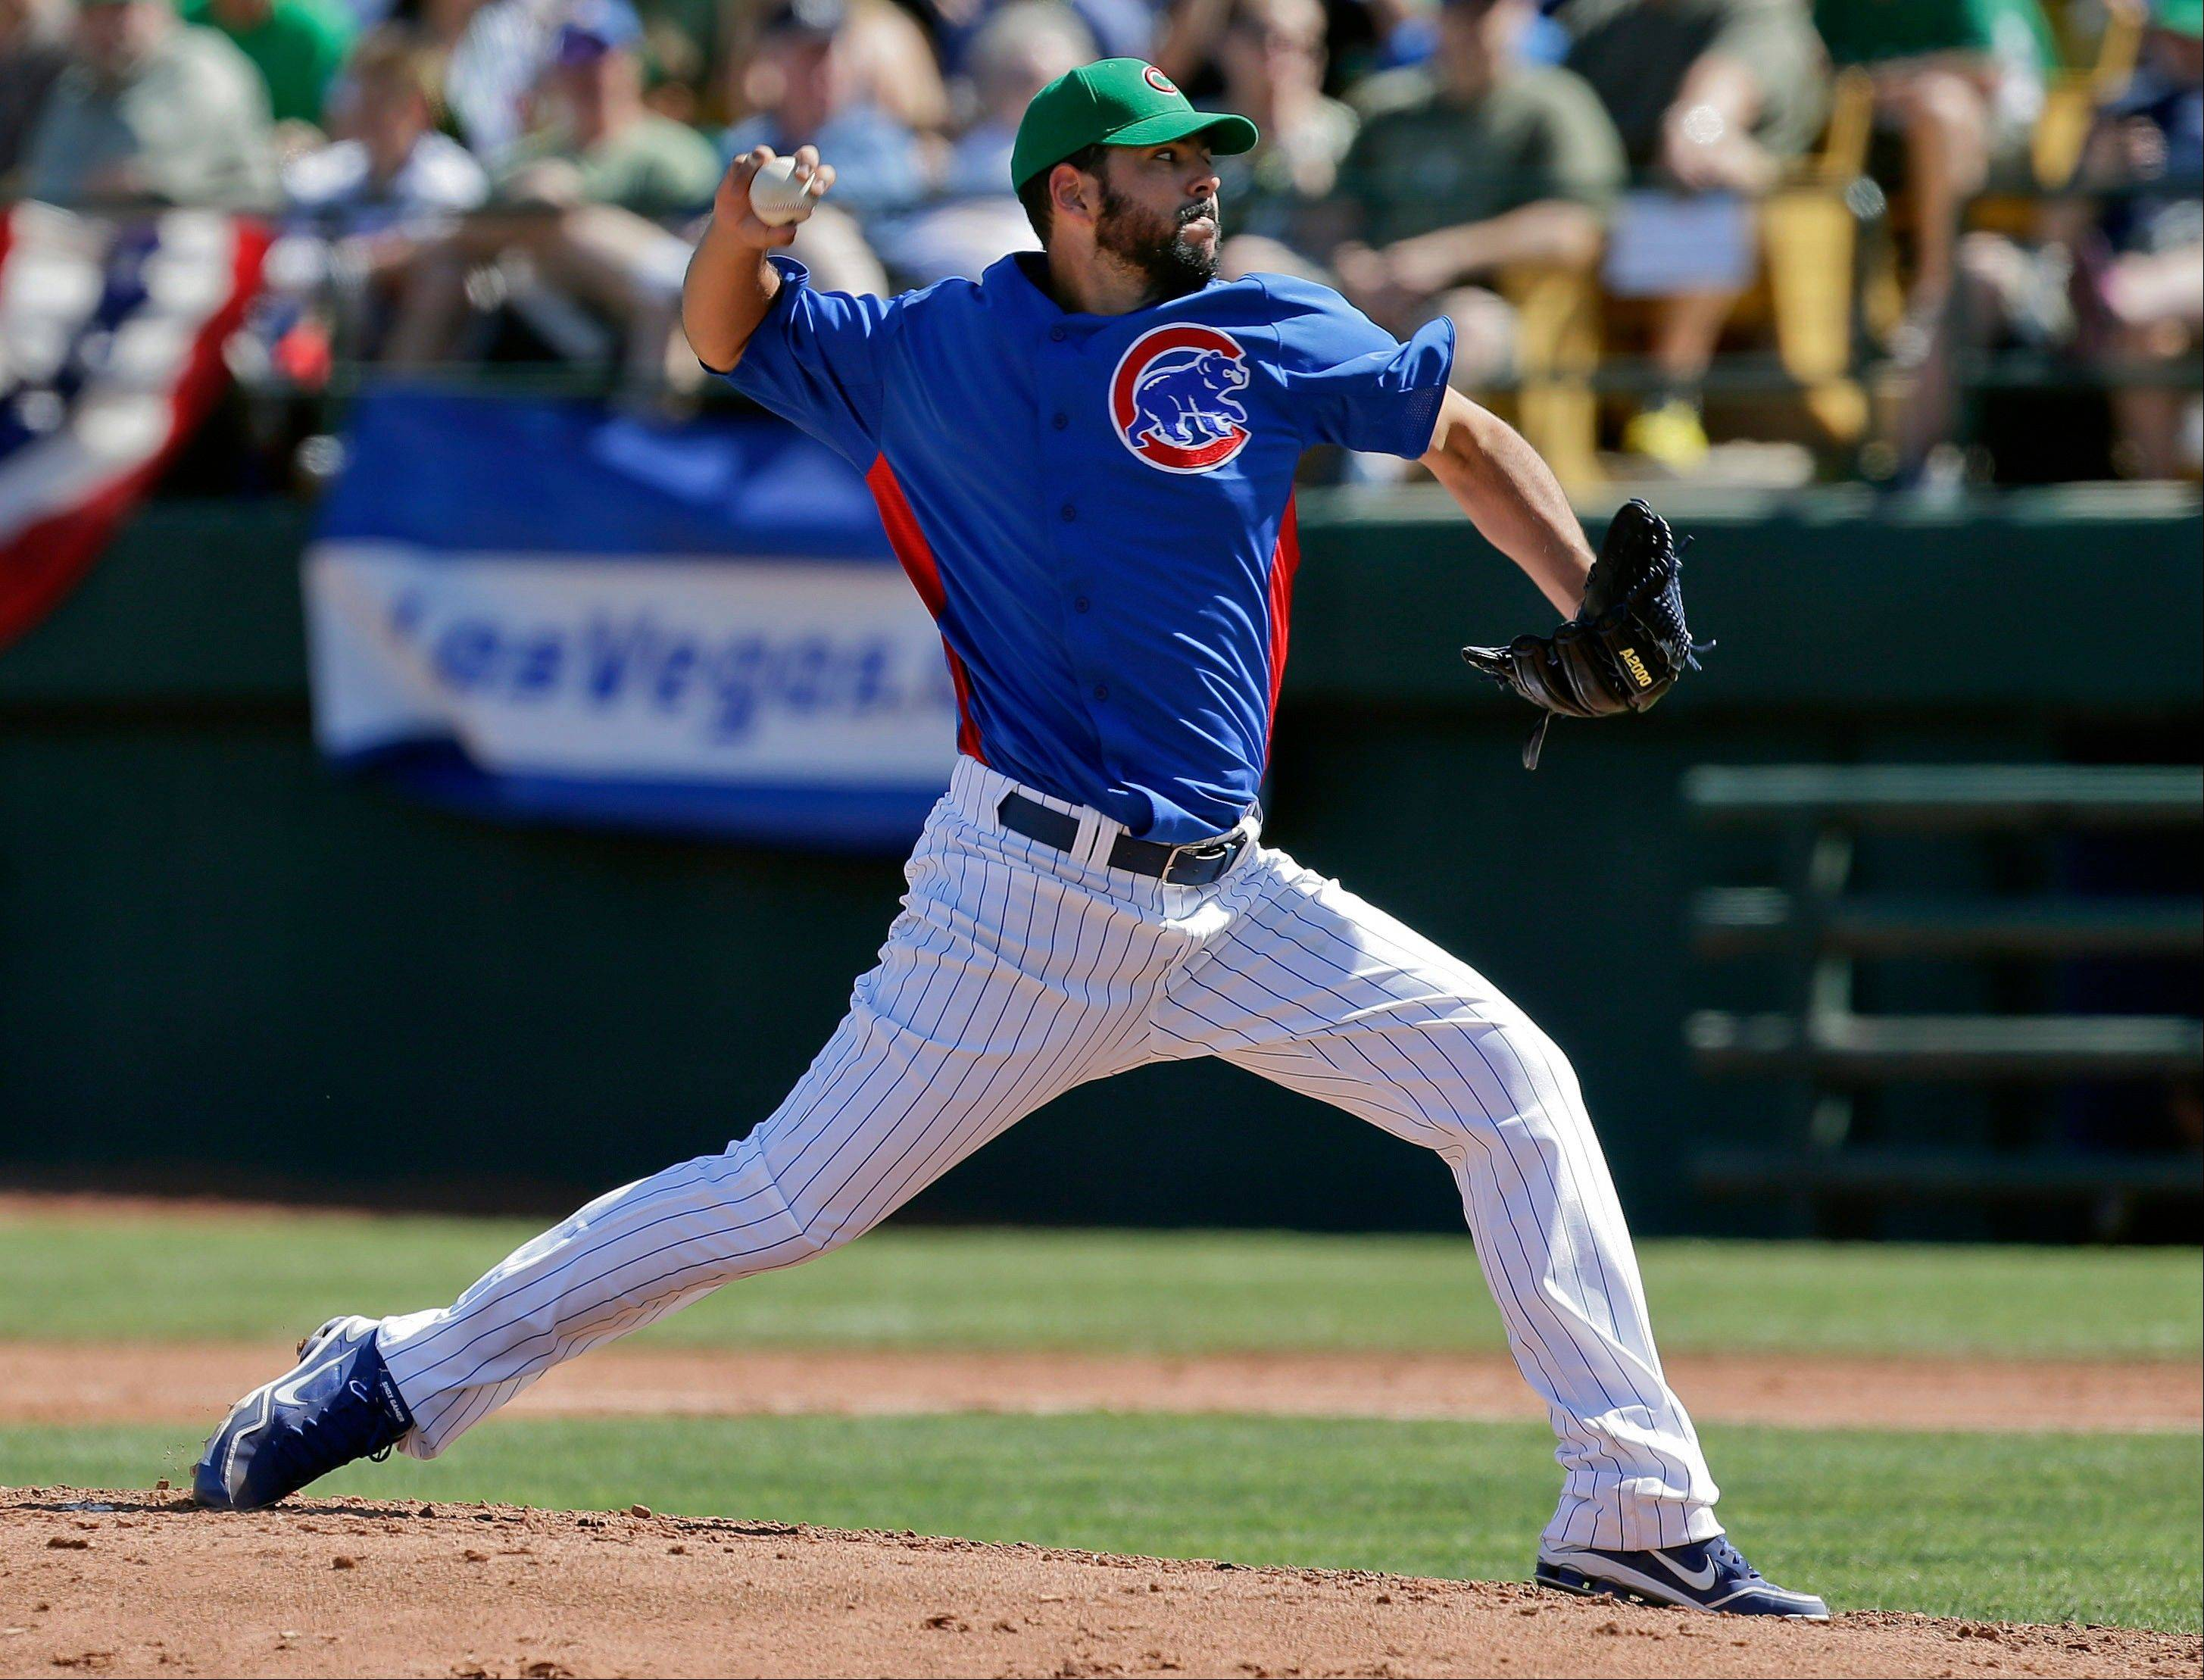 Chicago Cubs pitcher Carlos Villanueva delivers against the Texas Rangers in the fourth inning of an exhibition spring training baseball game, Sunday, March 17, 2013, in Las Vegas. (AP Photo/Julie Jacobson)